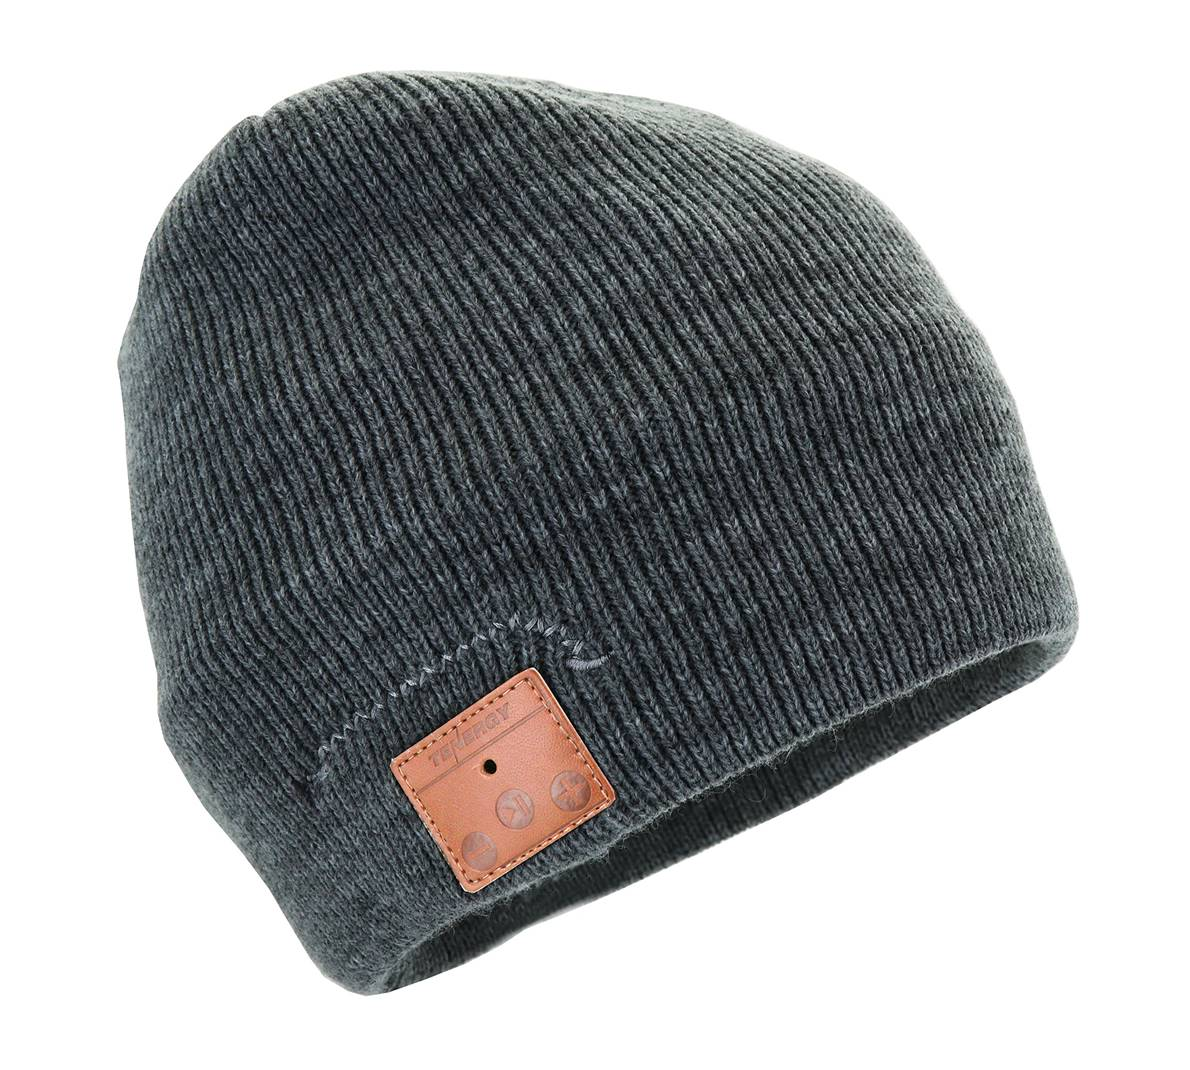 Tenergy Bluetooth Beanies